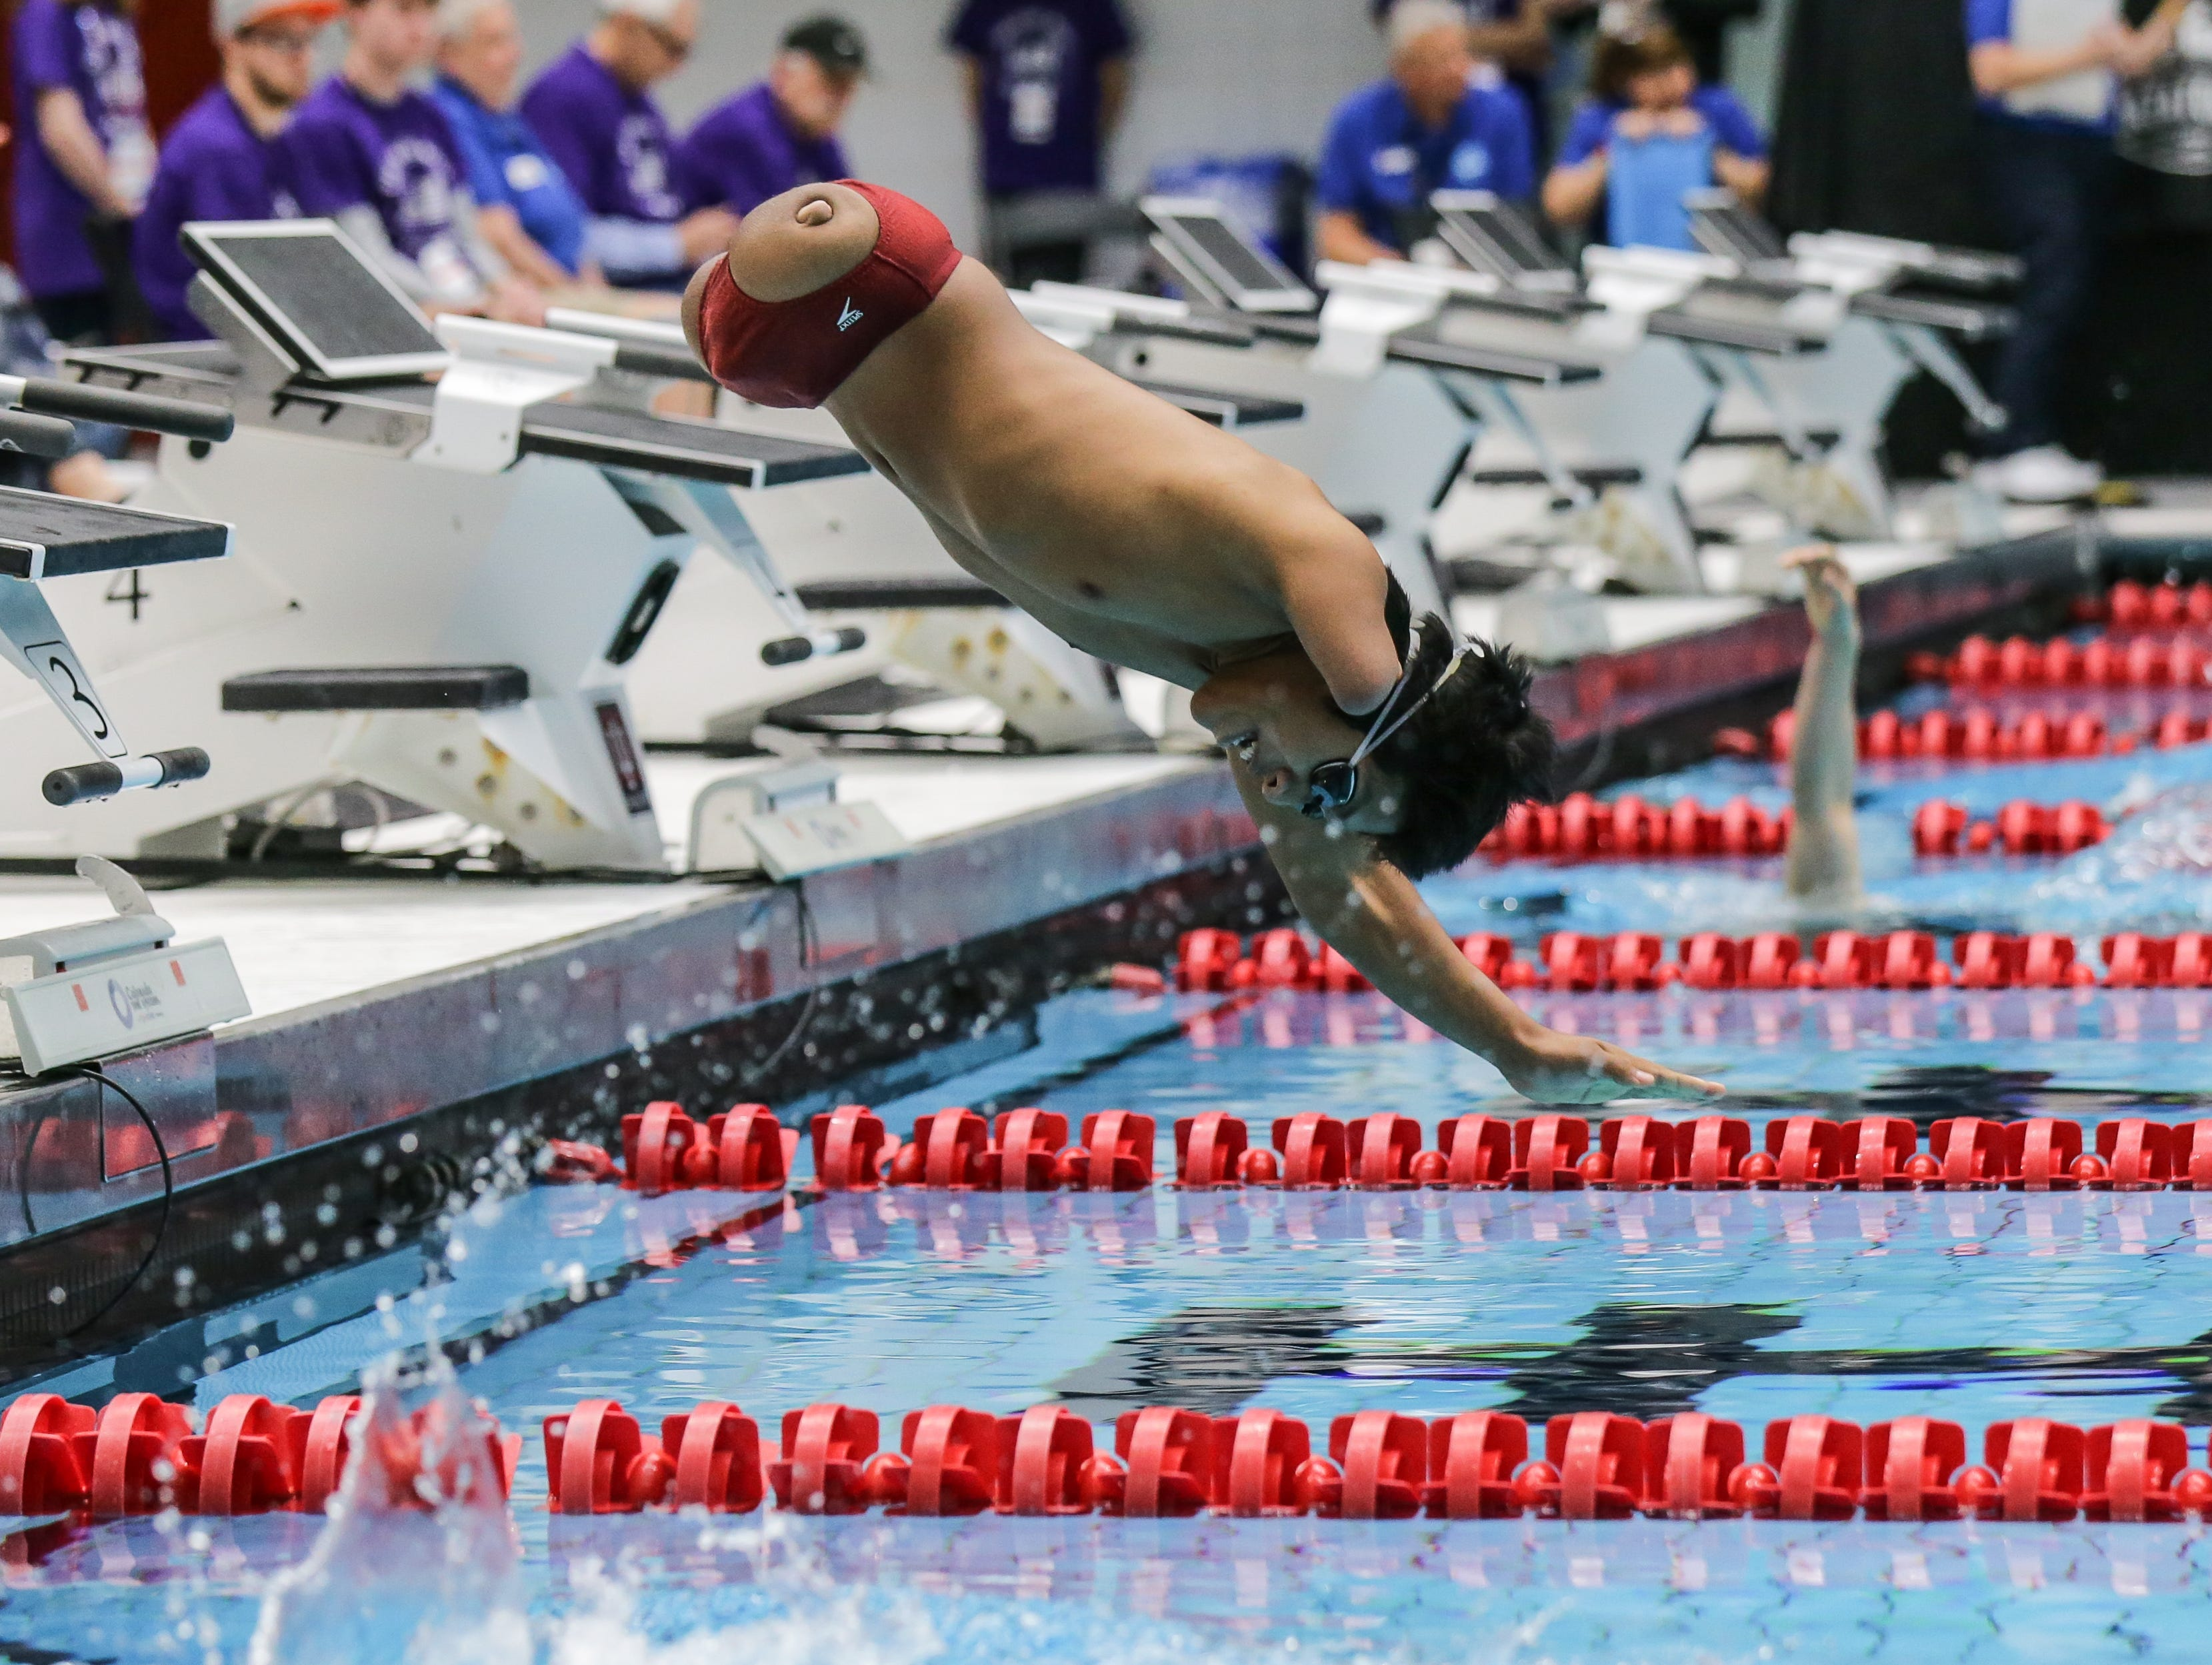 Gabe Marsh competes in the Men's 200 LC Meter Freestyle Multi-Class during the Indianapolis 2018 World Para-Swimming World Finals held at the IUPUI Natatorium on Thursday, April 19, 2018.